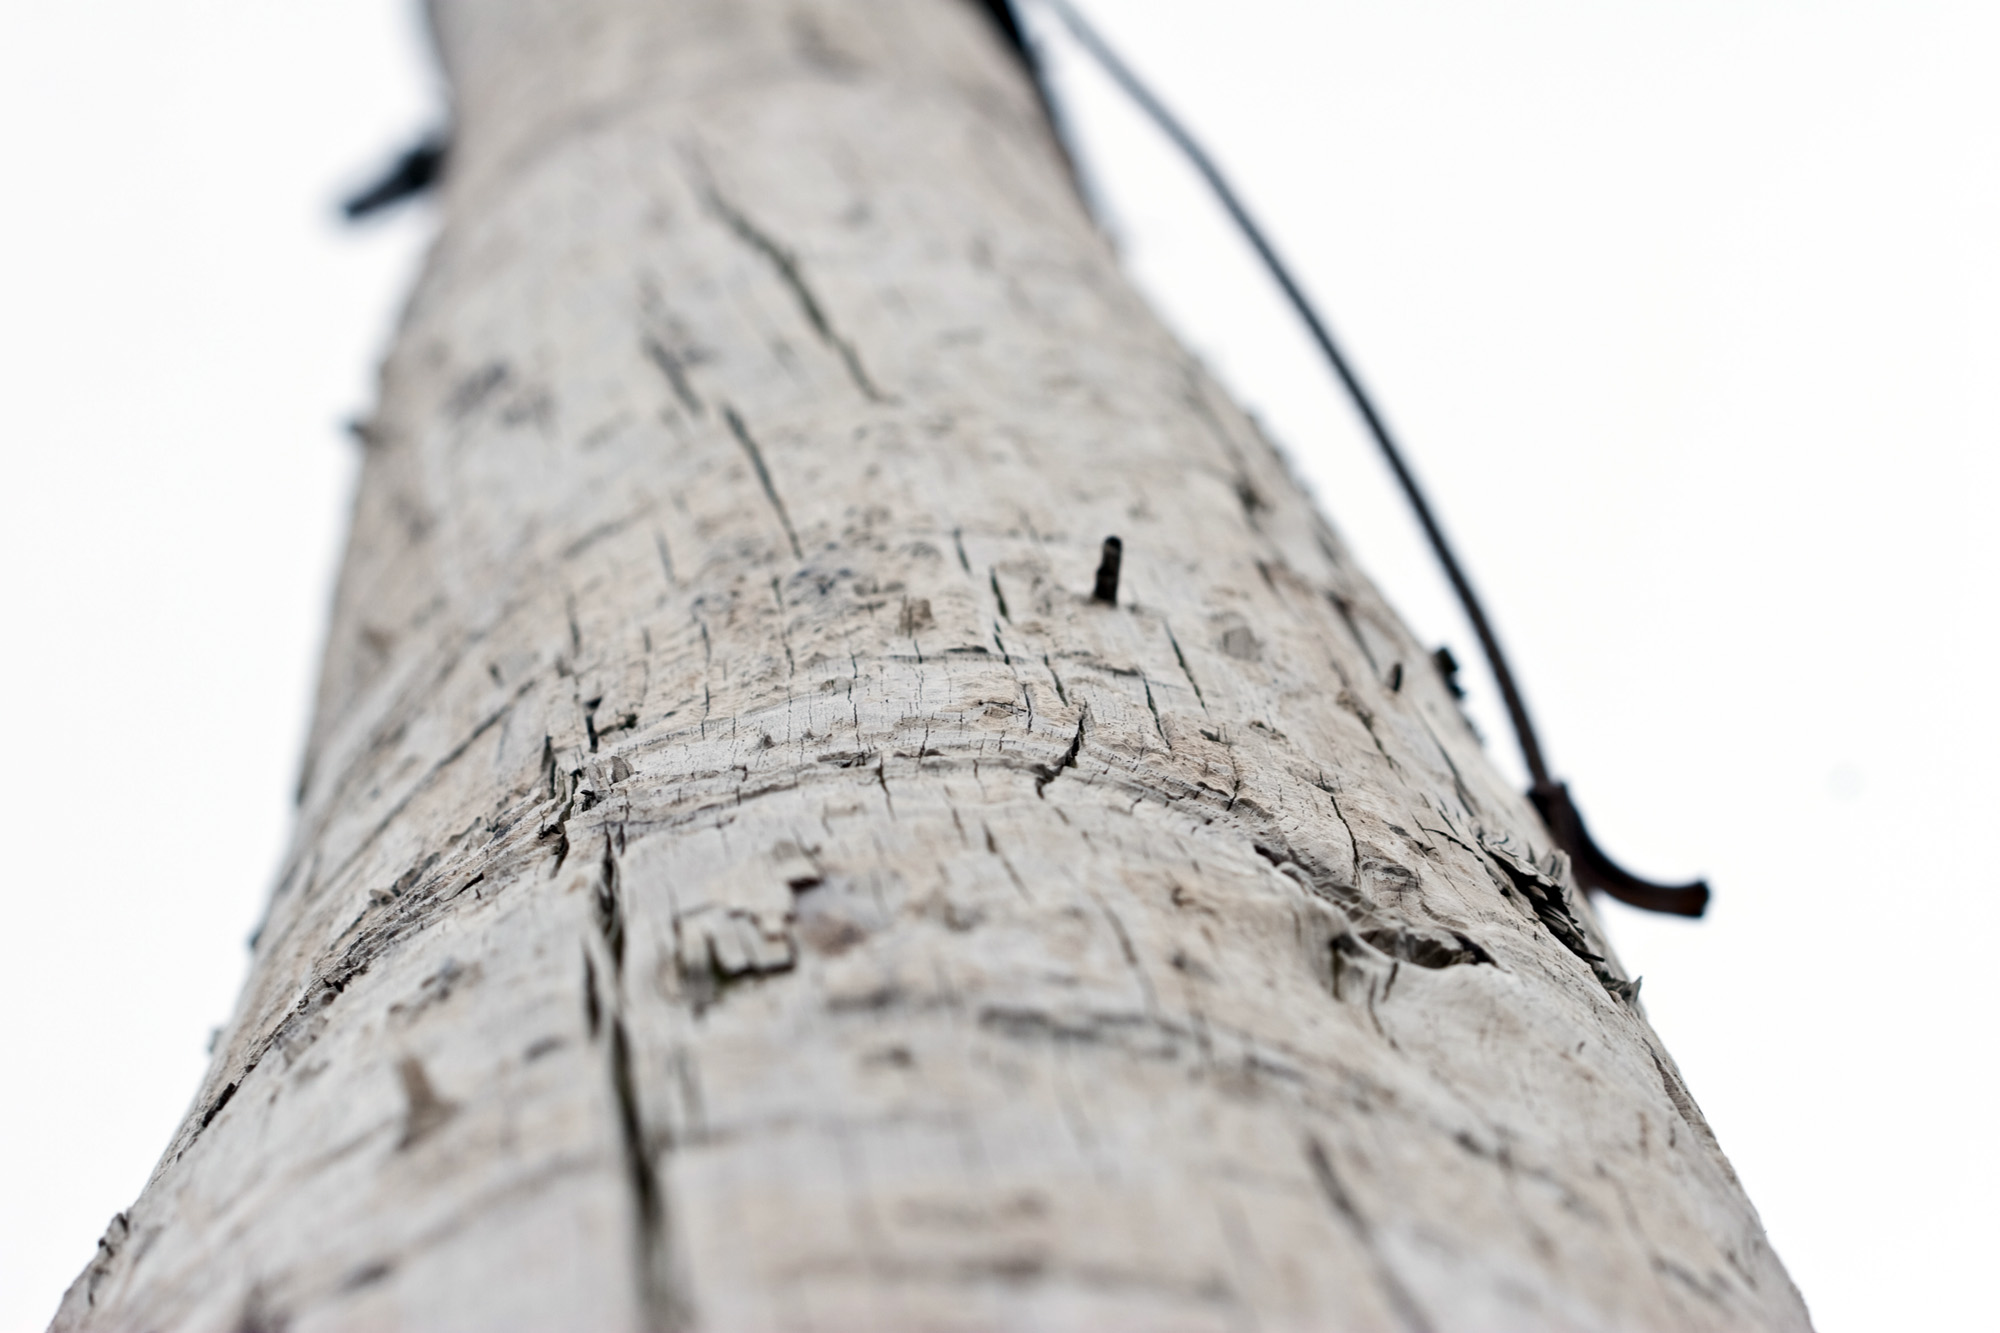 Wooden pole, Pole, White, Up, Tree, HQ Photo